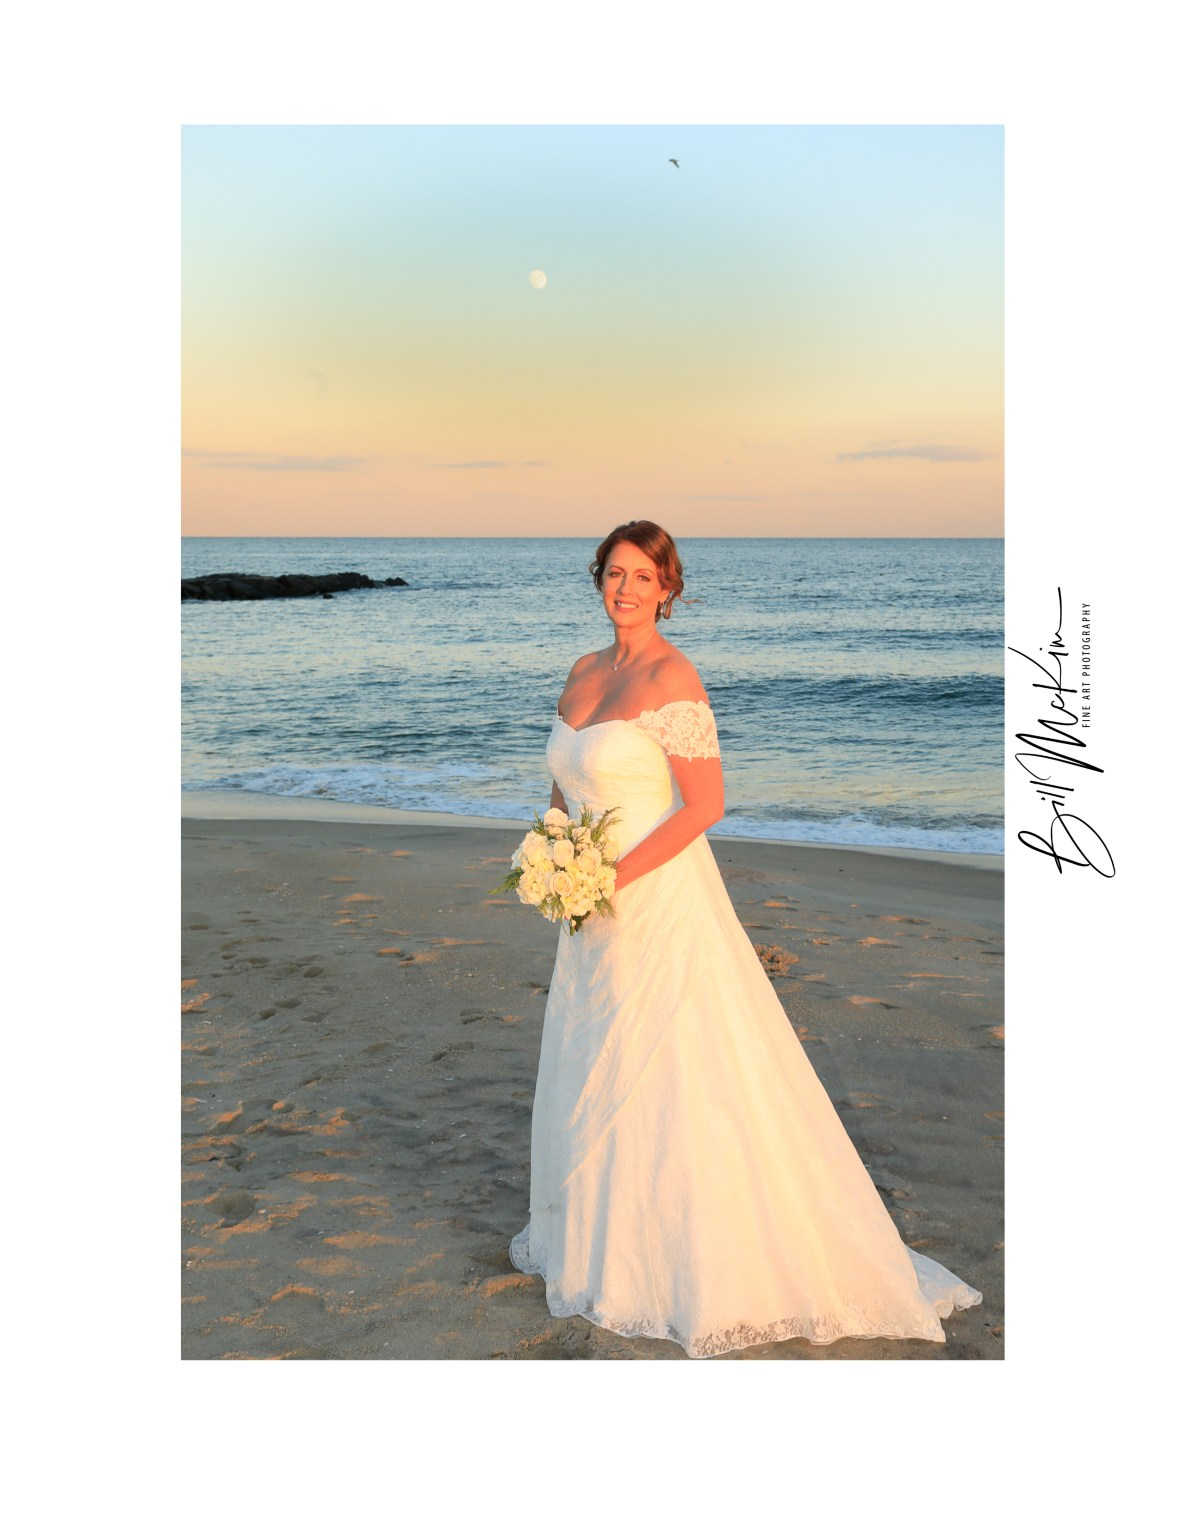 asbury park beach wedding photos